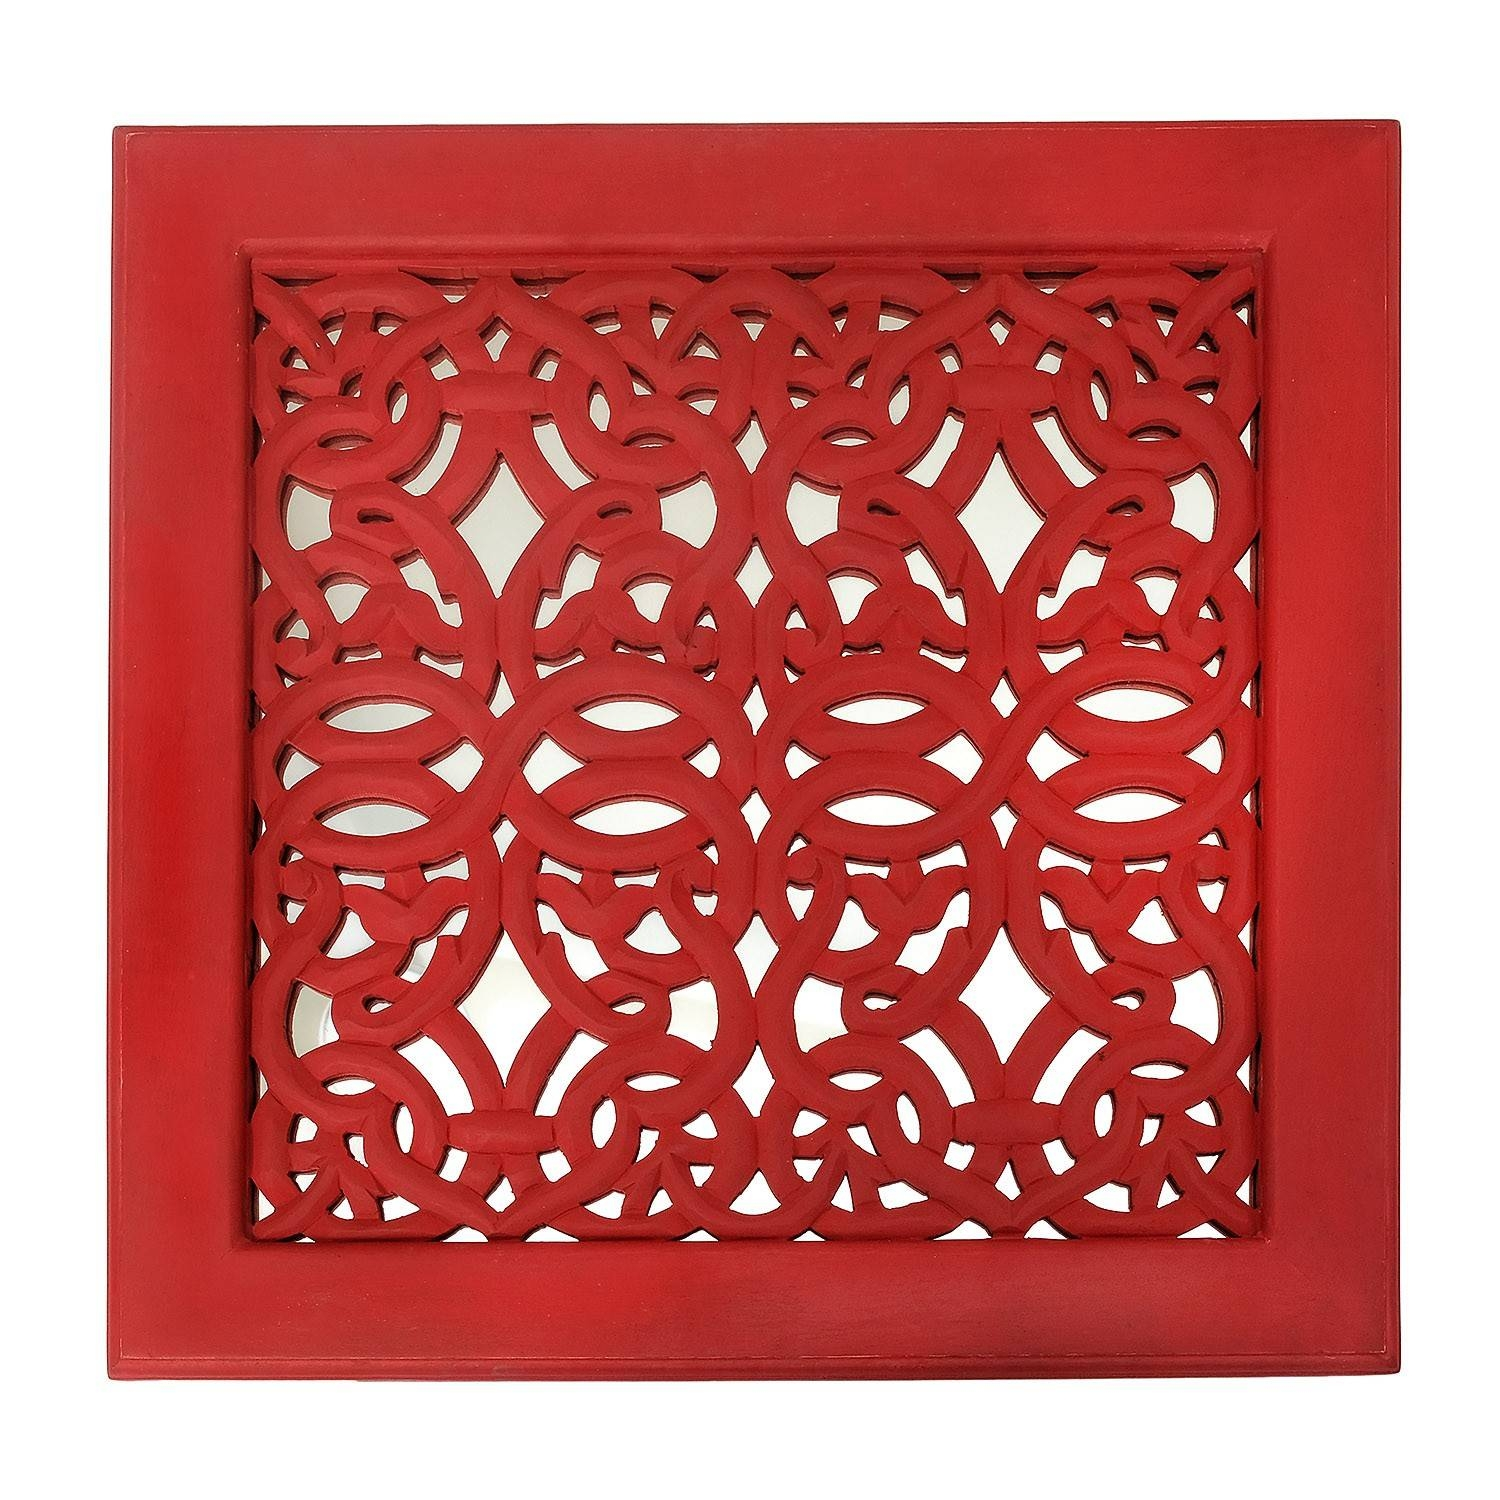 Fretwork Wall Art: Red (set Of 3) | The Yellow Door Store With Most Up To Date Fretwork Wall Art (View 10 of 25)